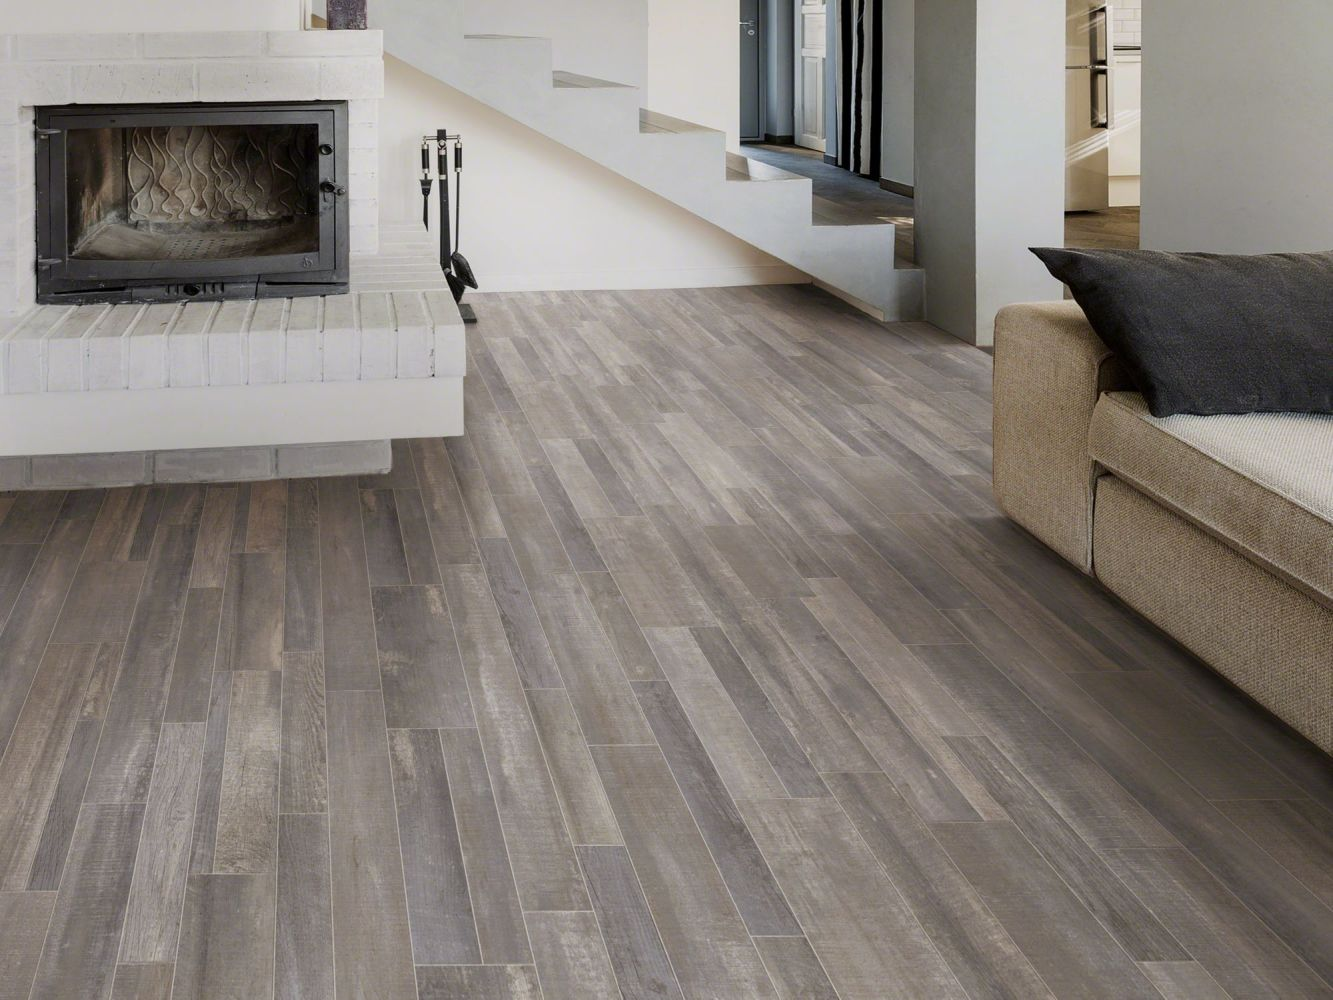 Shaw Floors Resilient Property Solutions Highlands II Citadel 00560_VG076